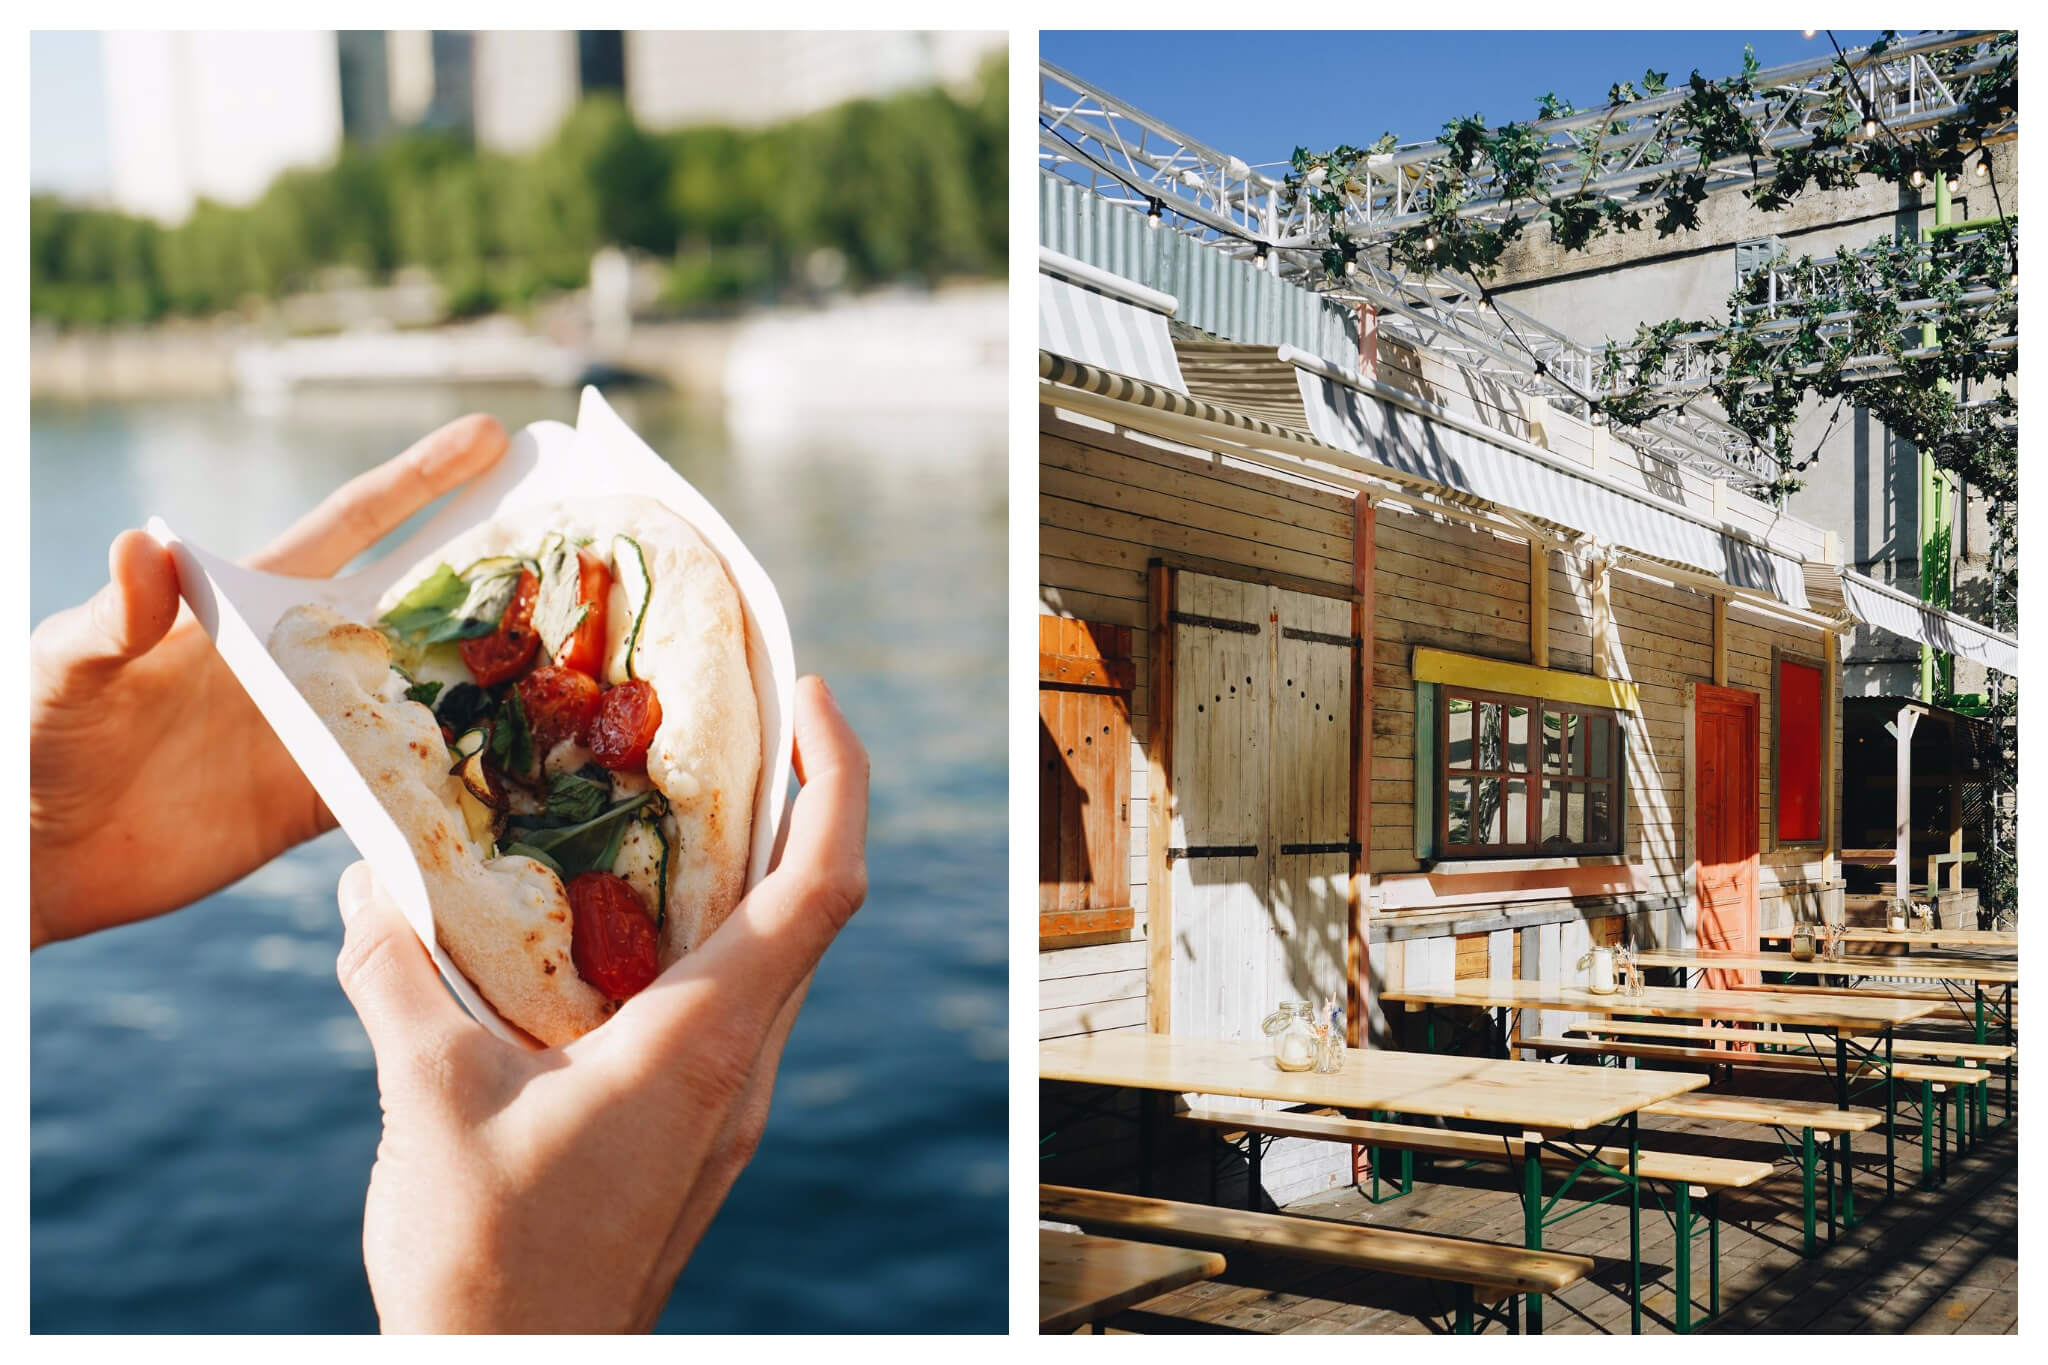 Left: a person's hands holding a pita bread stuffed with tomatoes and basil with the Seine in the background. Right: the wooden terrace with wooden bench seats at Wanderlust Street Food, a bar in Paris.